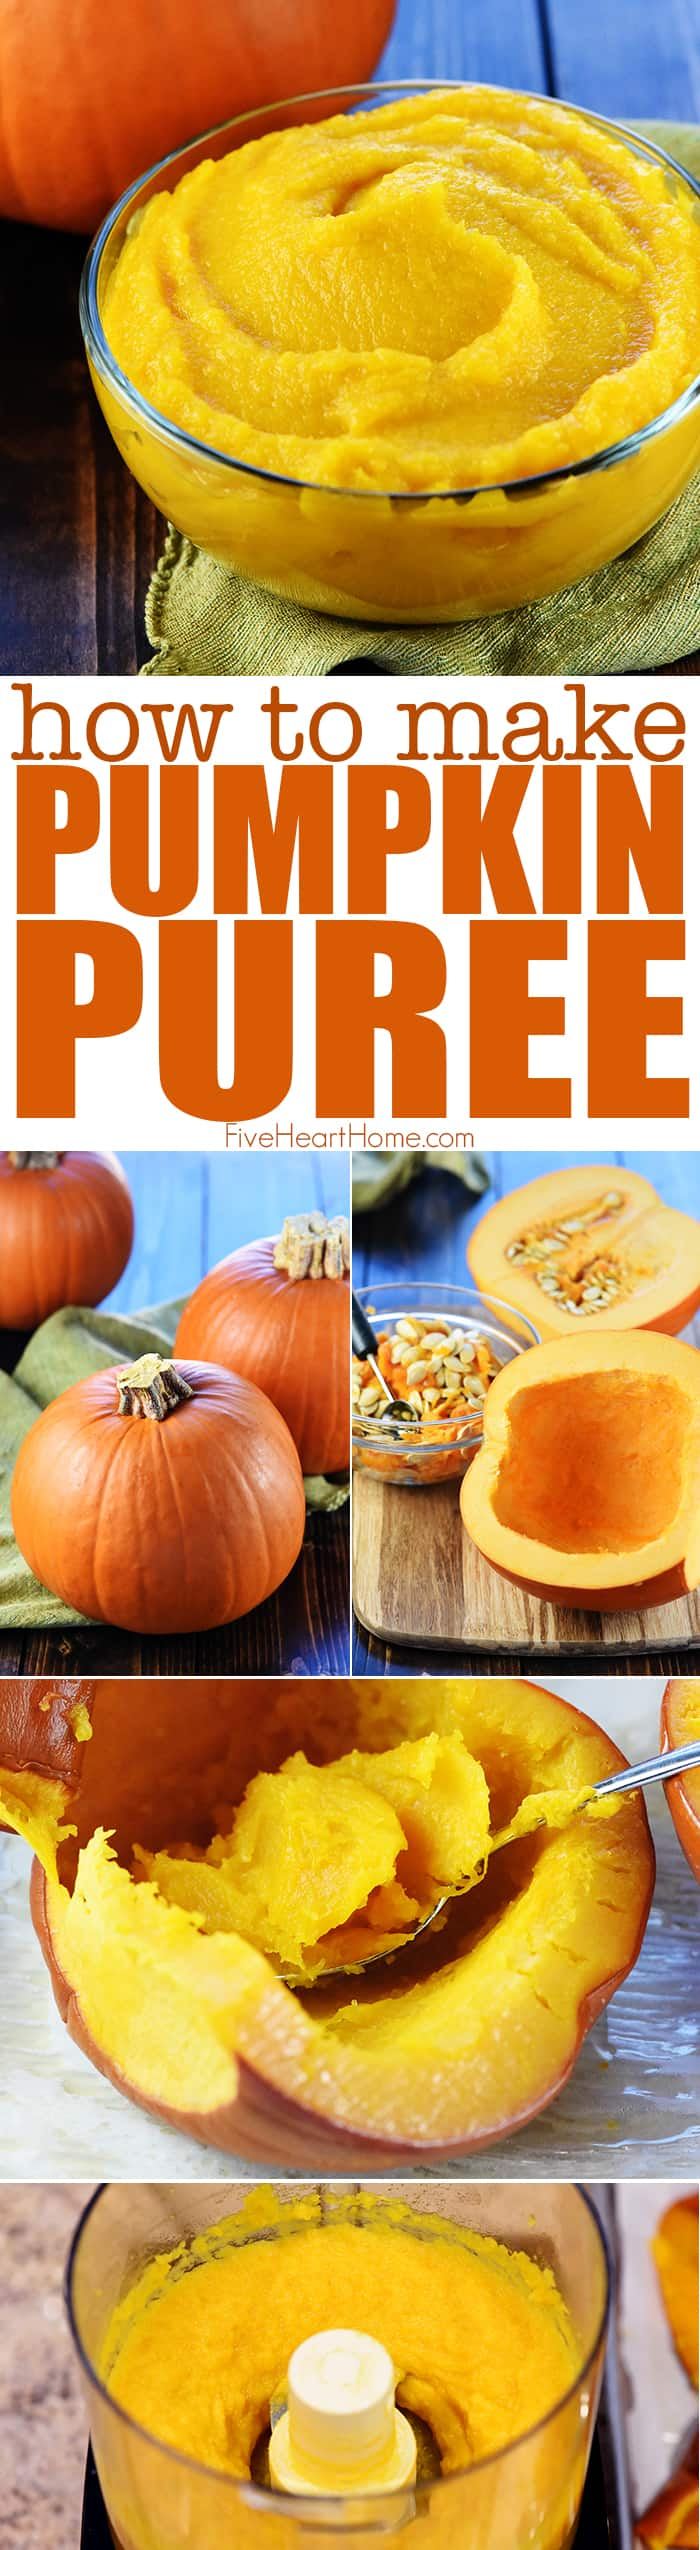 Homemade Pumpkin Puree Recipe ~ step-by-step directions for how to make pumpkin puree...it's easy to make this healthy and delicious base for all of your favorite pumpkin recipes! | FiveHeartHome.com